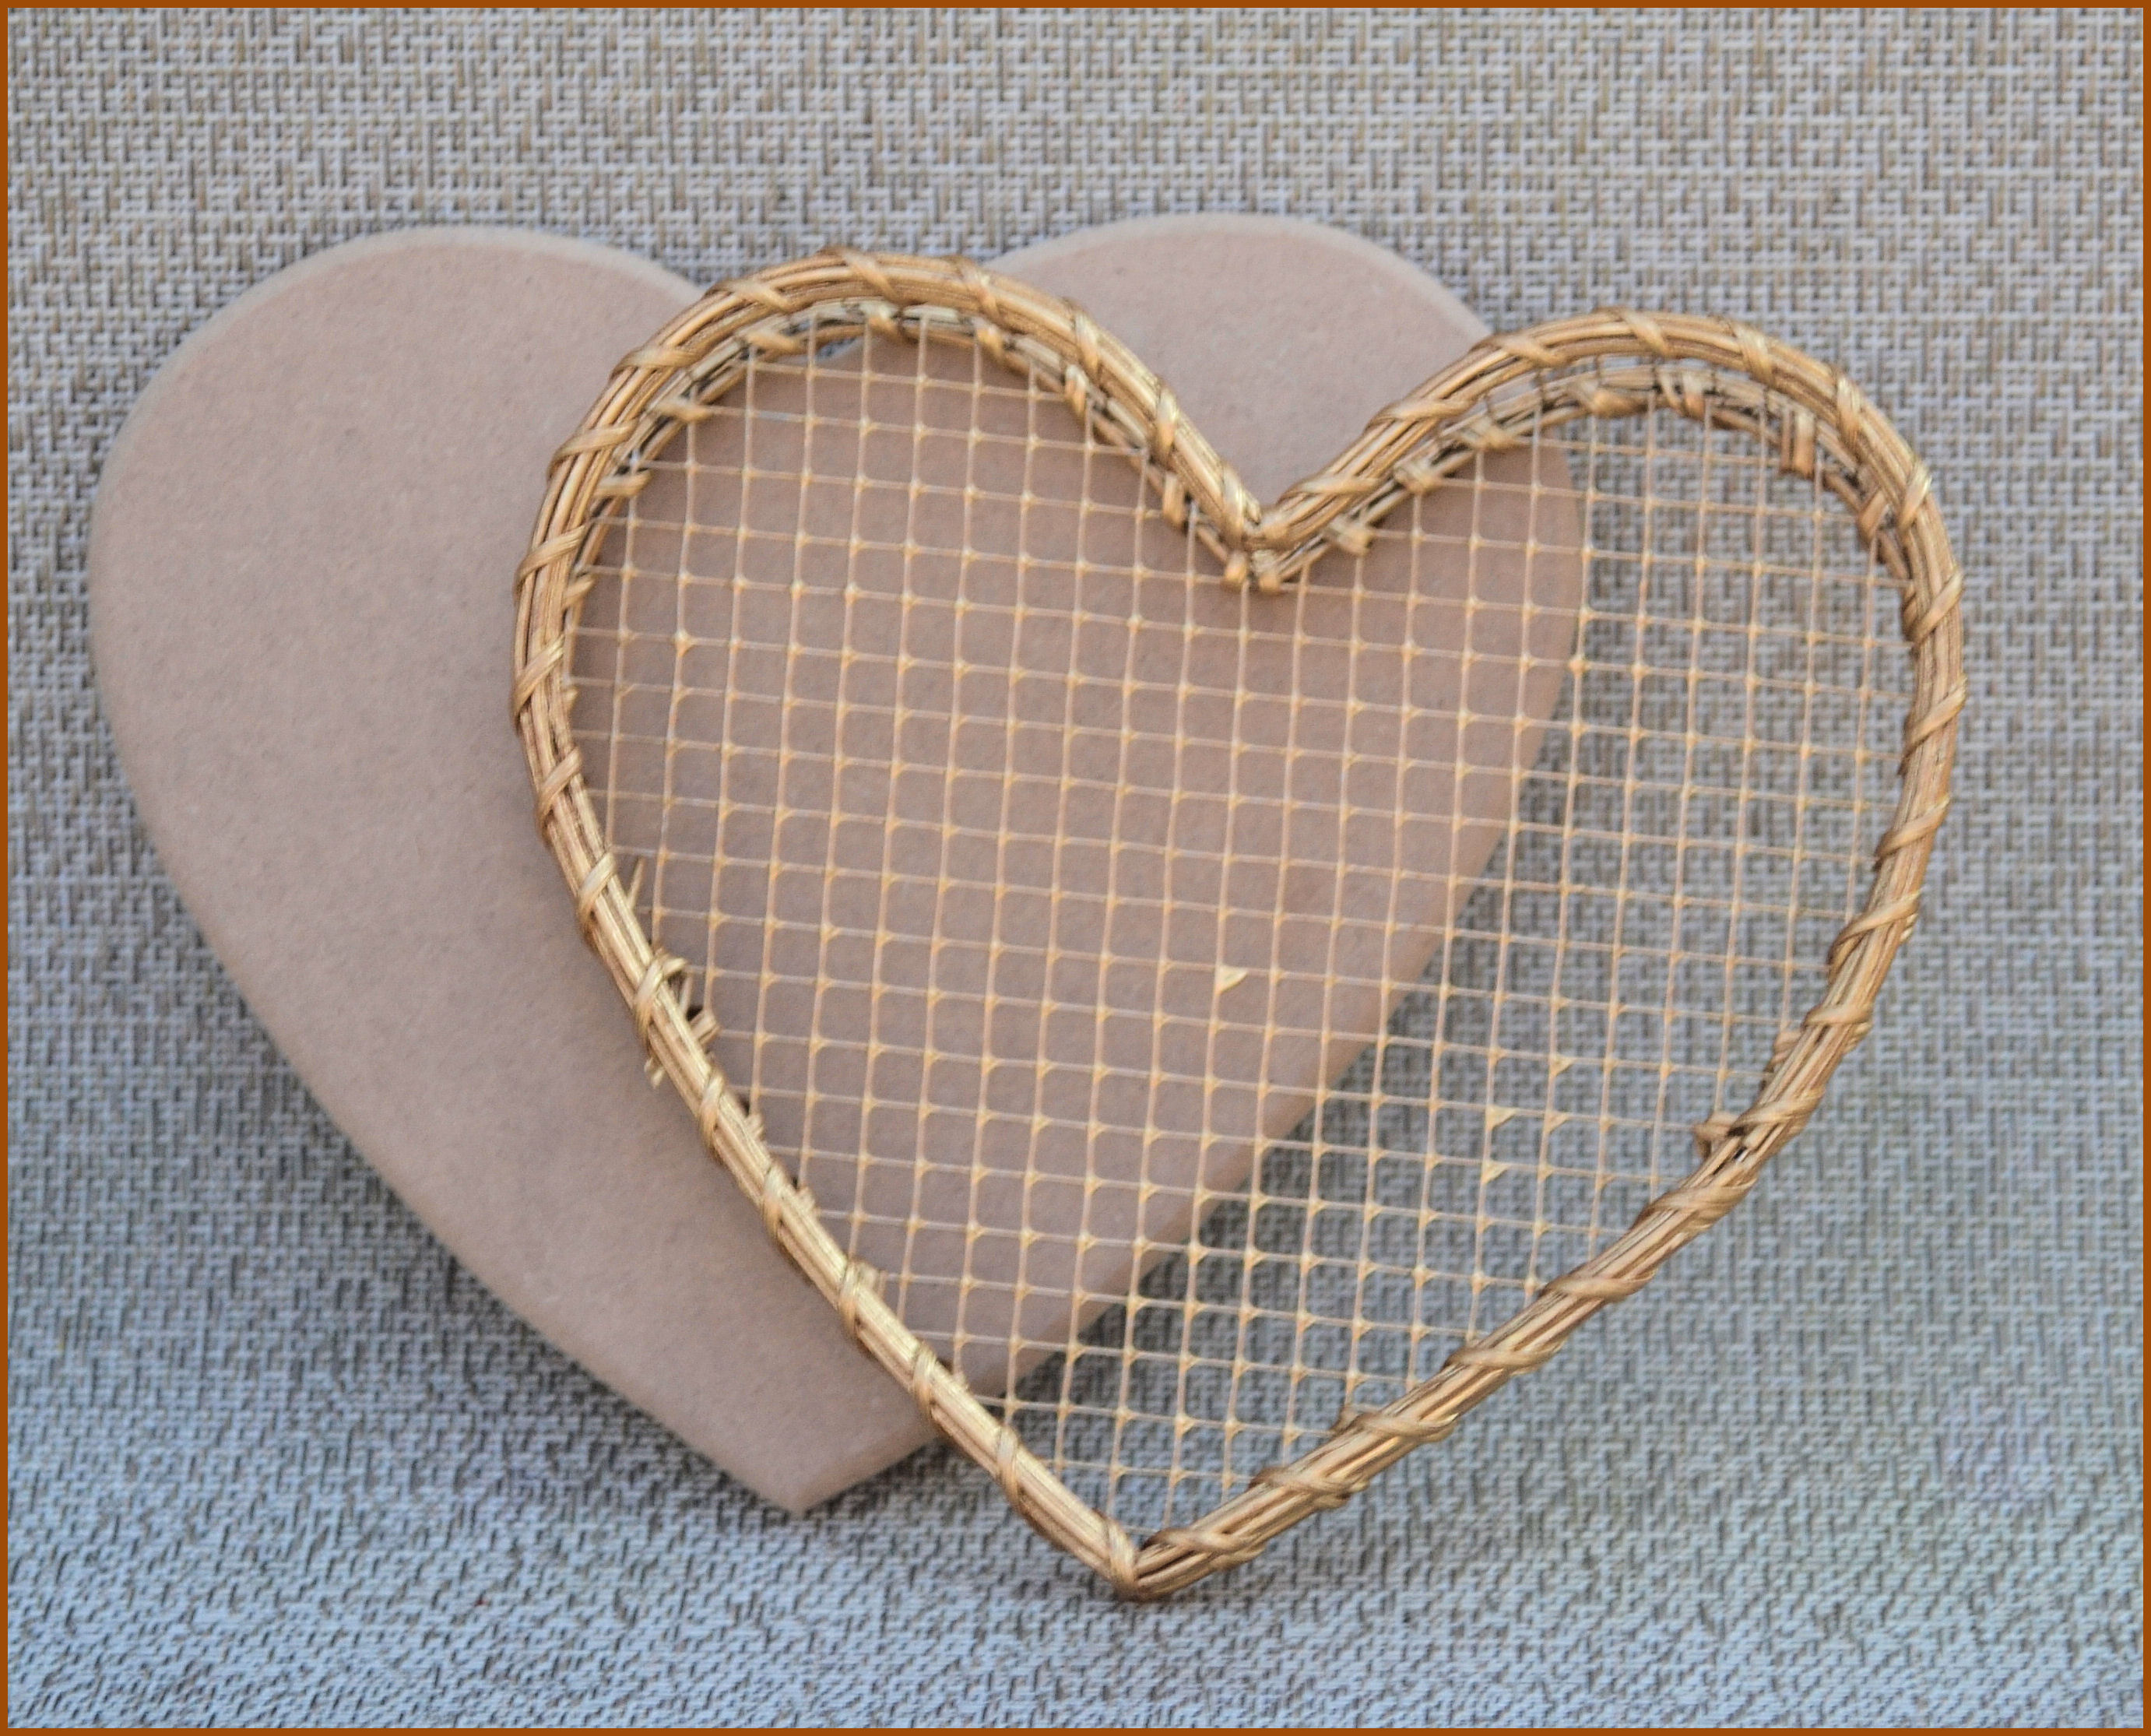 basket-heart-wire-basket-open-lid-118921.jpg